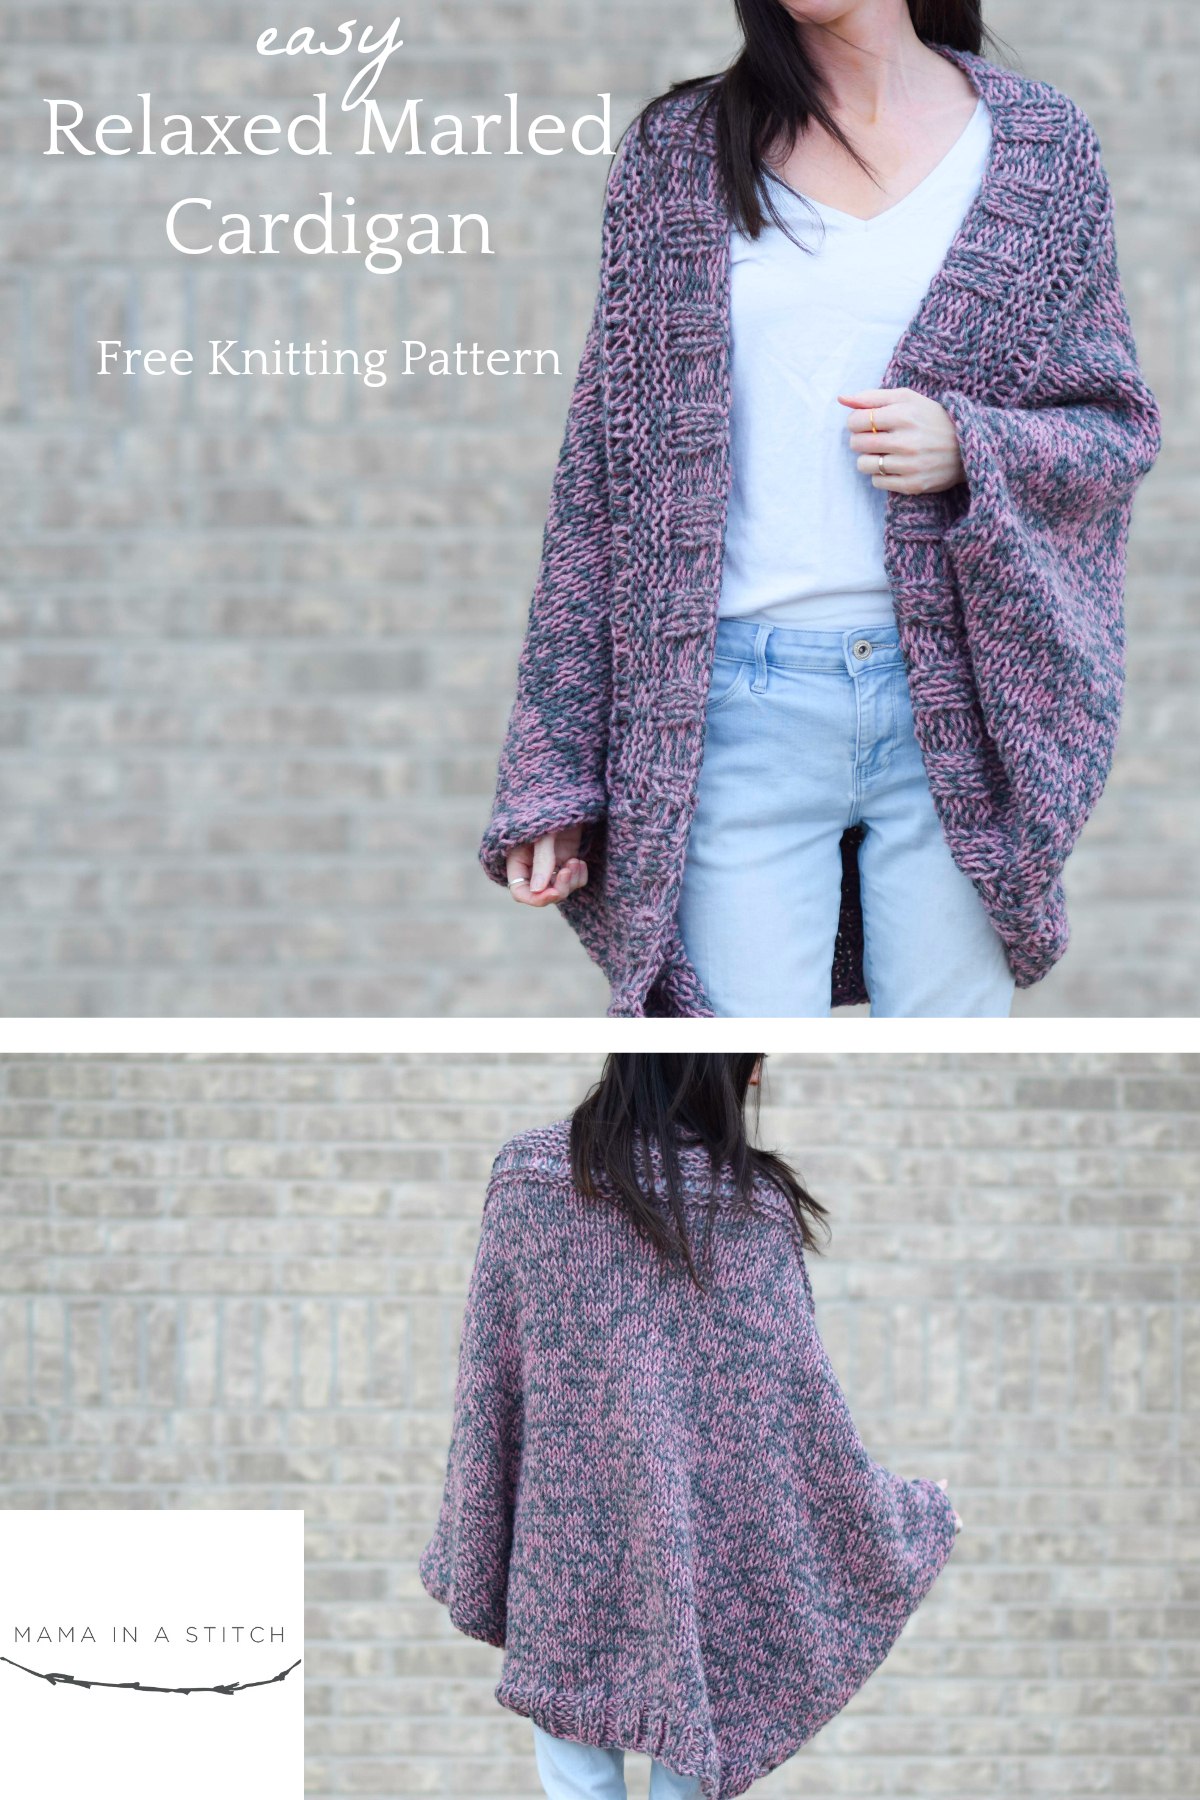 Free Knitted Cardigan Patterns Easy Relaxed Marled Cardigan Knitting Pattern Mama In A Stitch